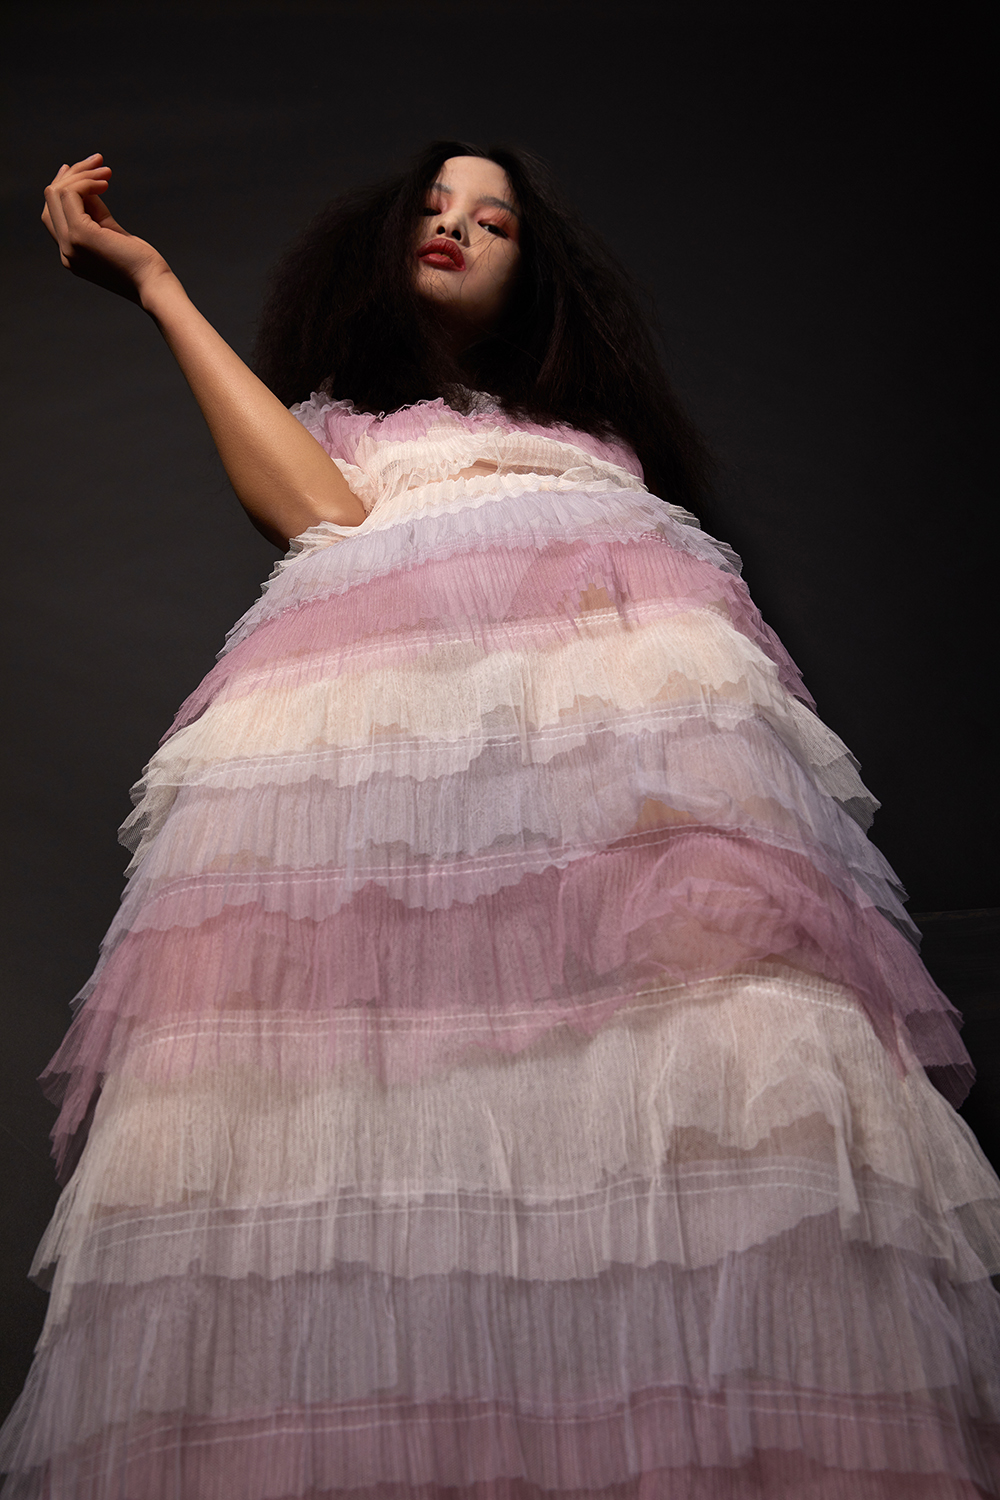 Tulle Dress by Malan Breton